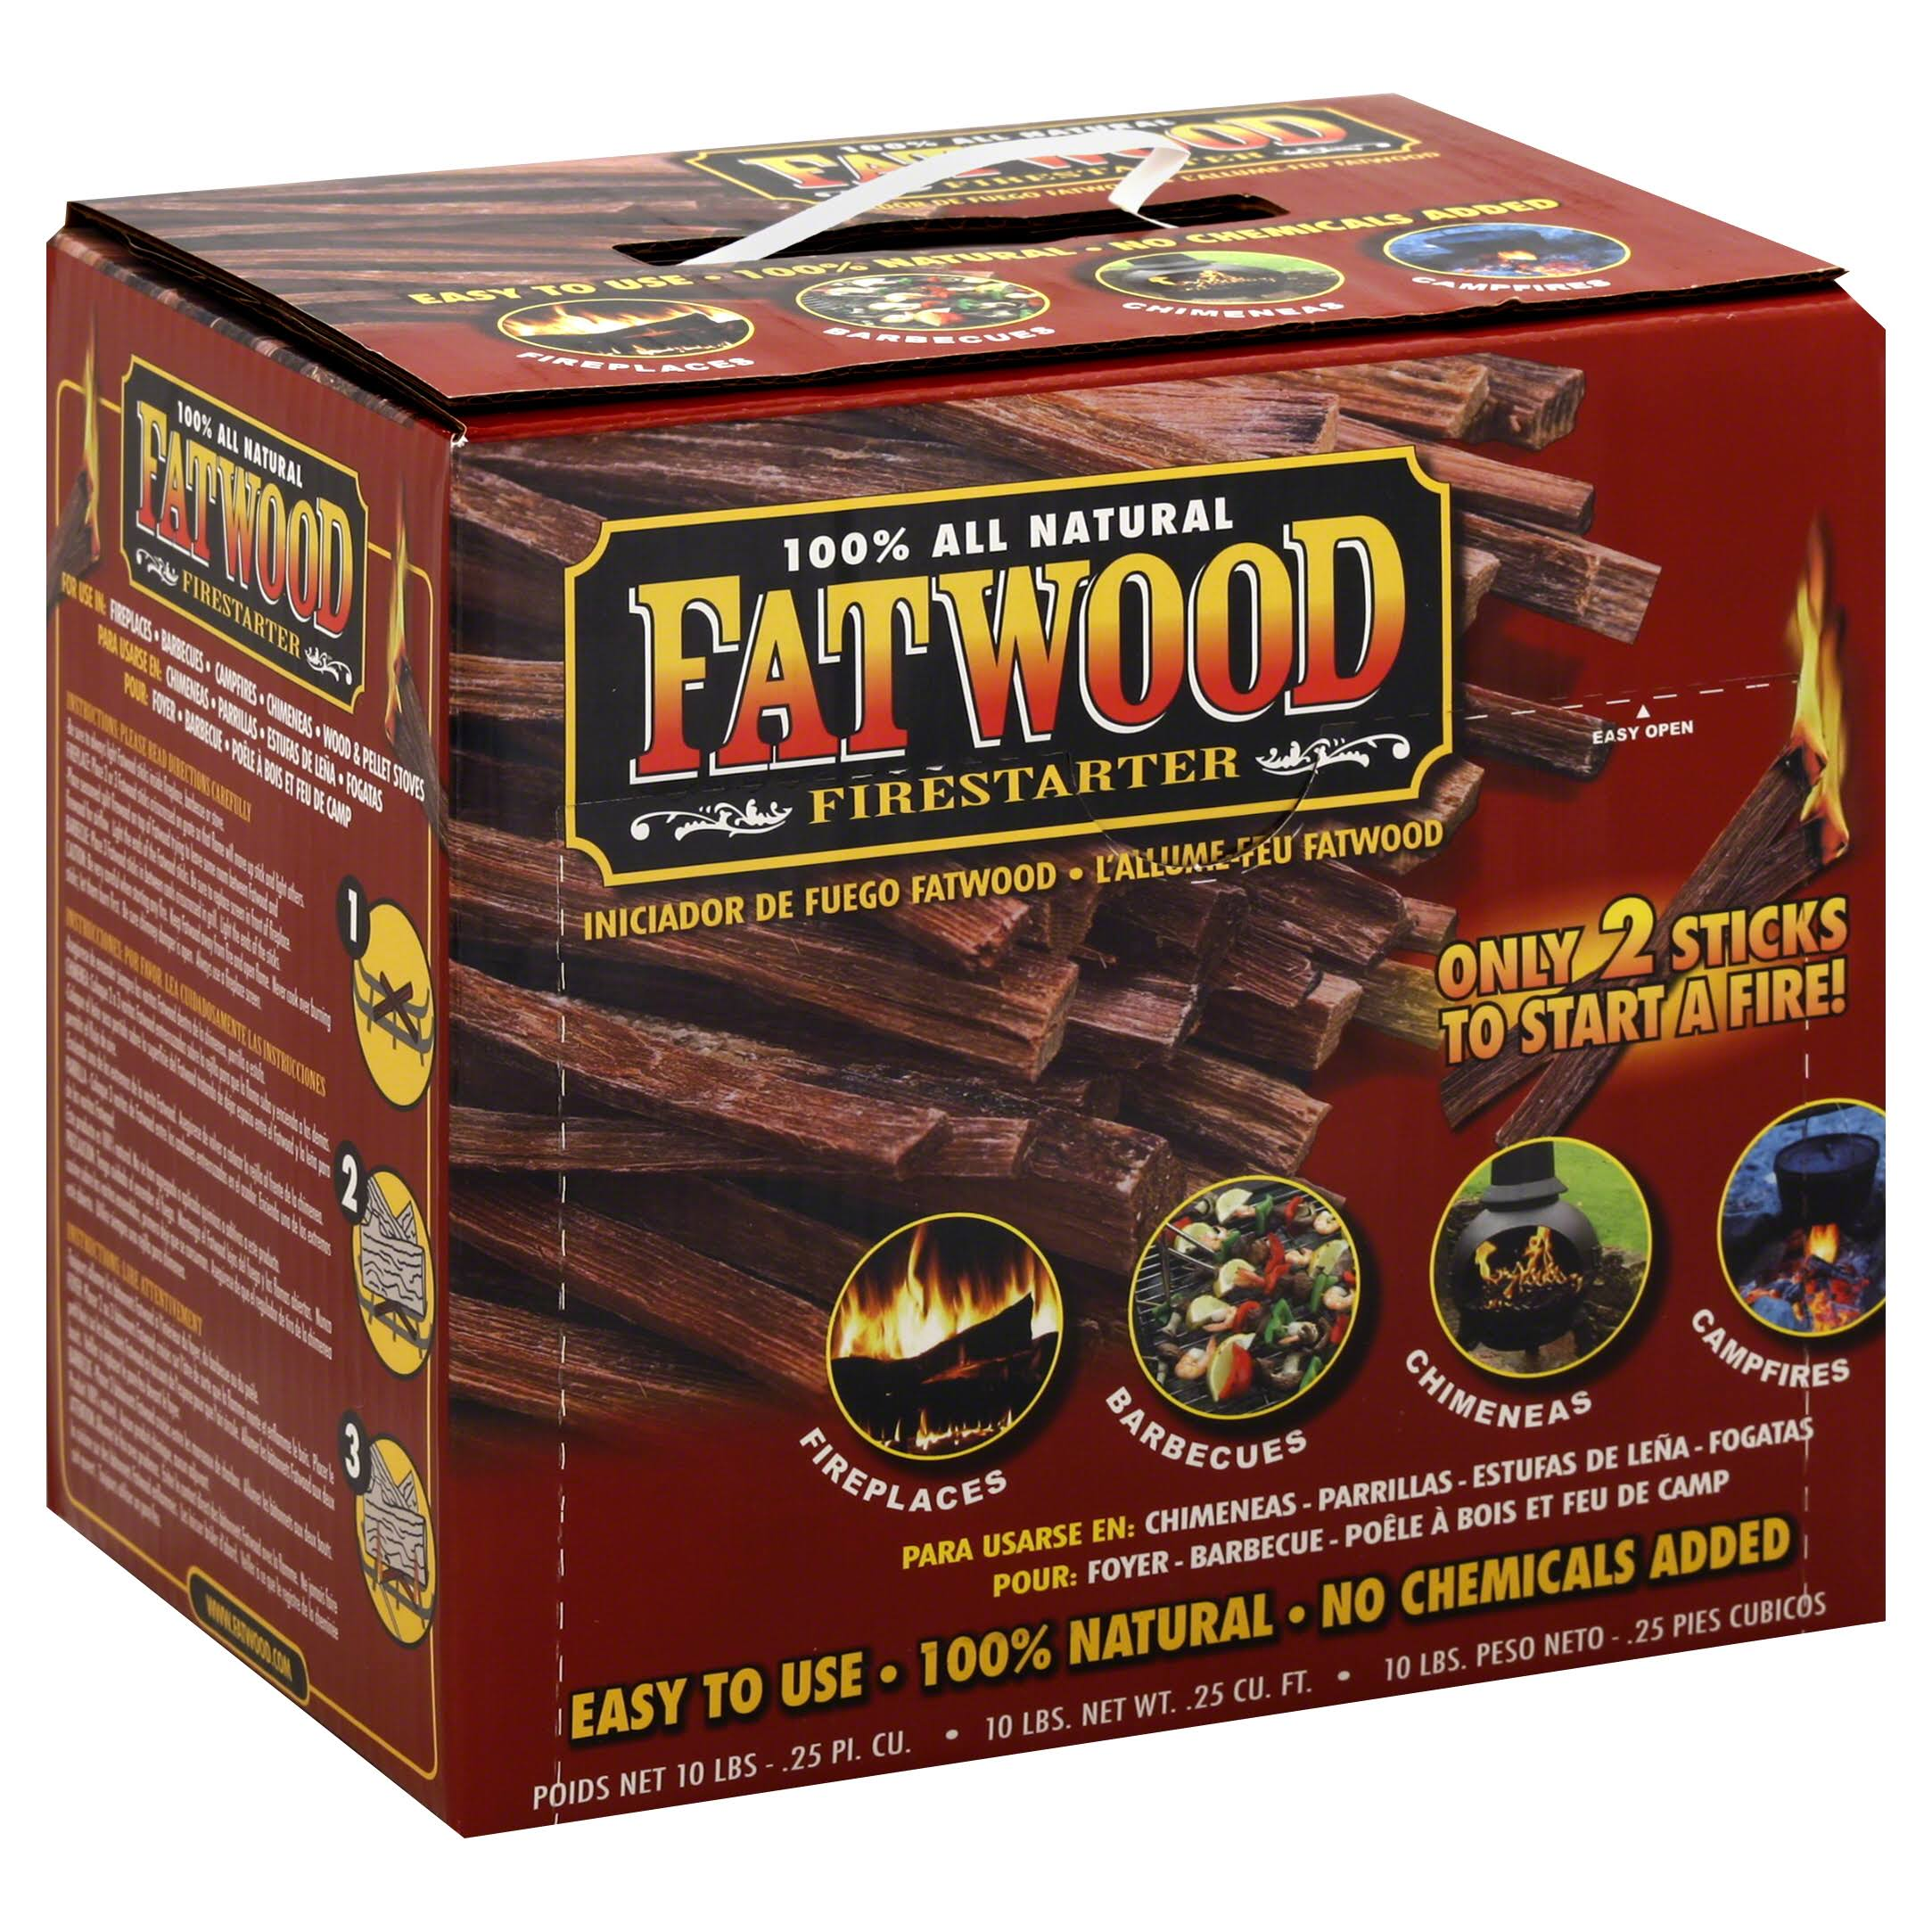 Wood Products Fatwood Firestarter - .25 CUFT, 10lbs